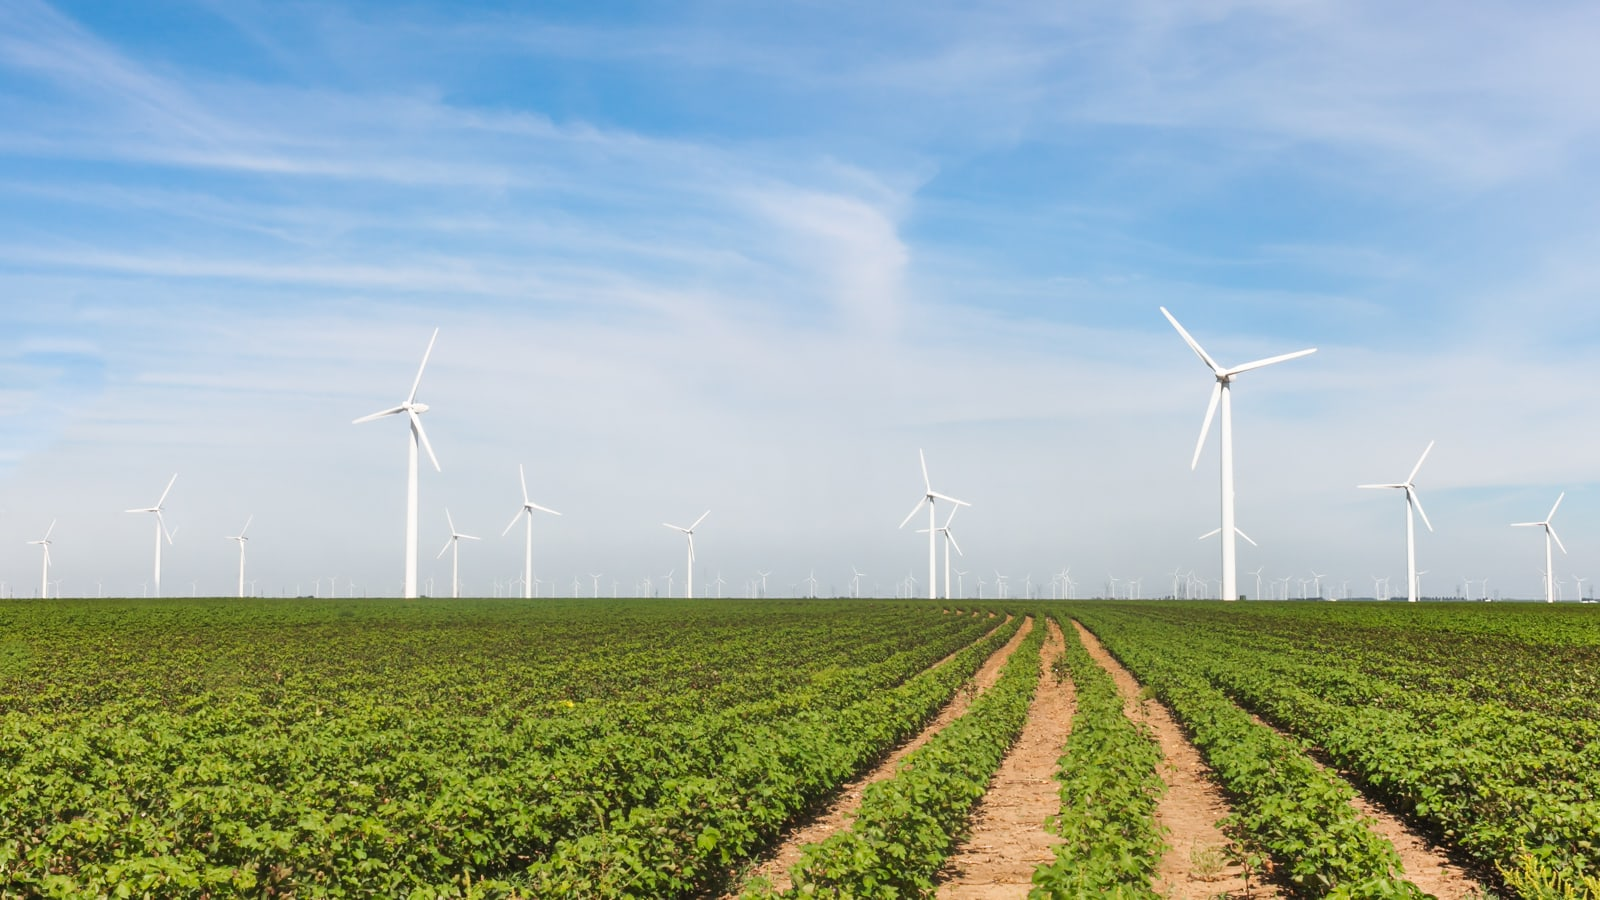 Cotton crops with wind turbines